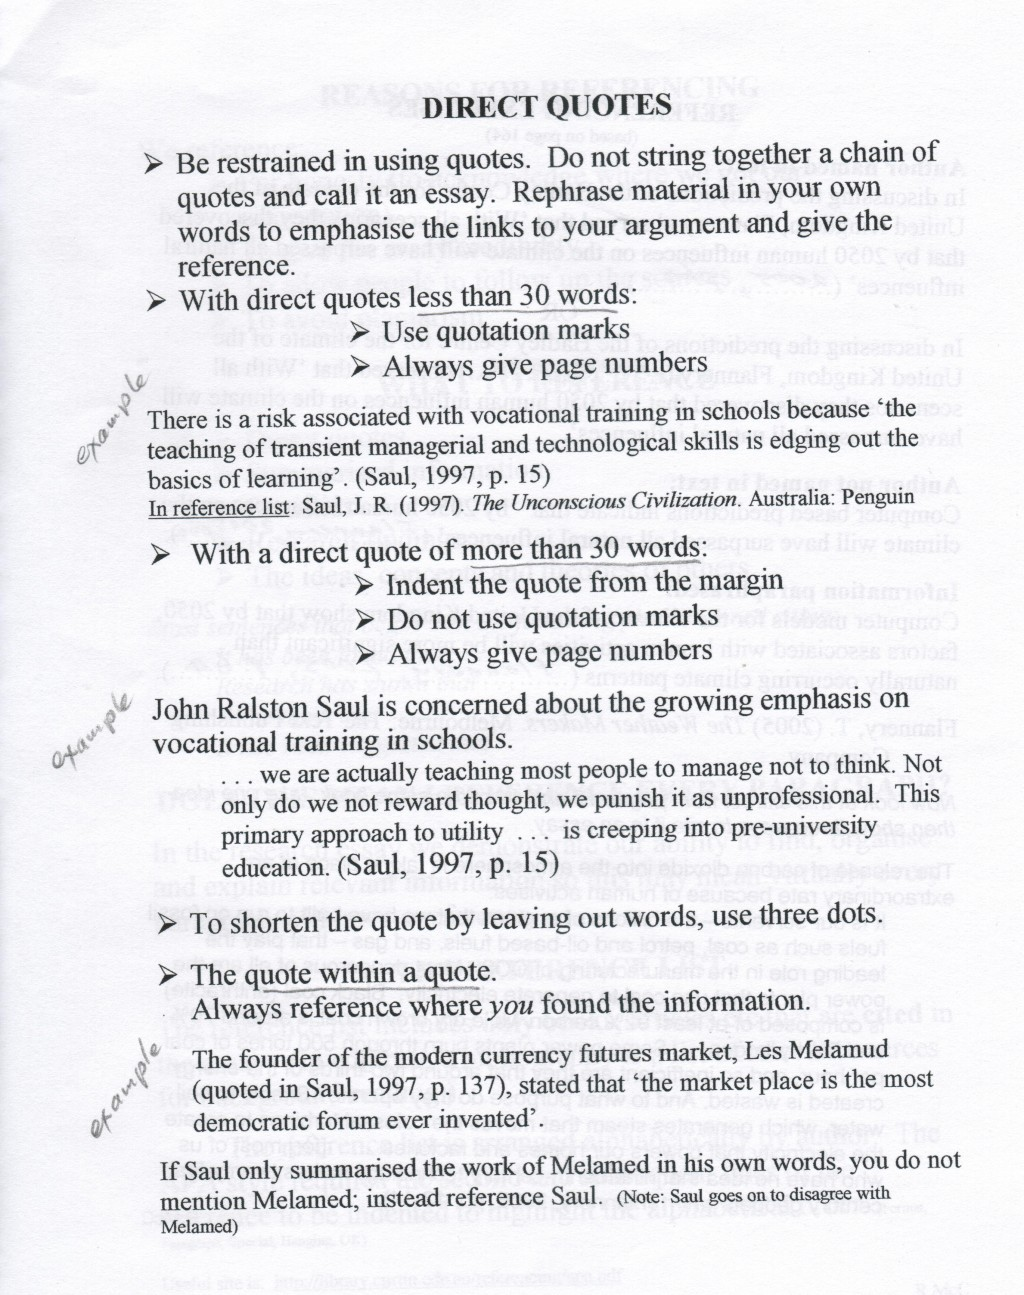 016 Direct Quotes How To Write An Essay With Imposing In Mla Integrate Quotations Writing Essays-apa Or Include A Quote Apa Large